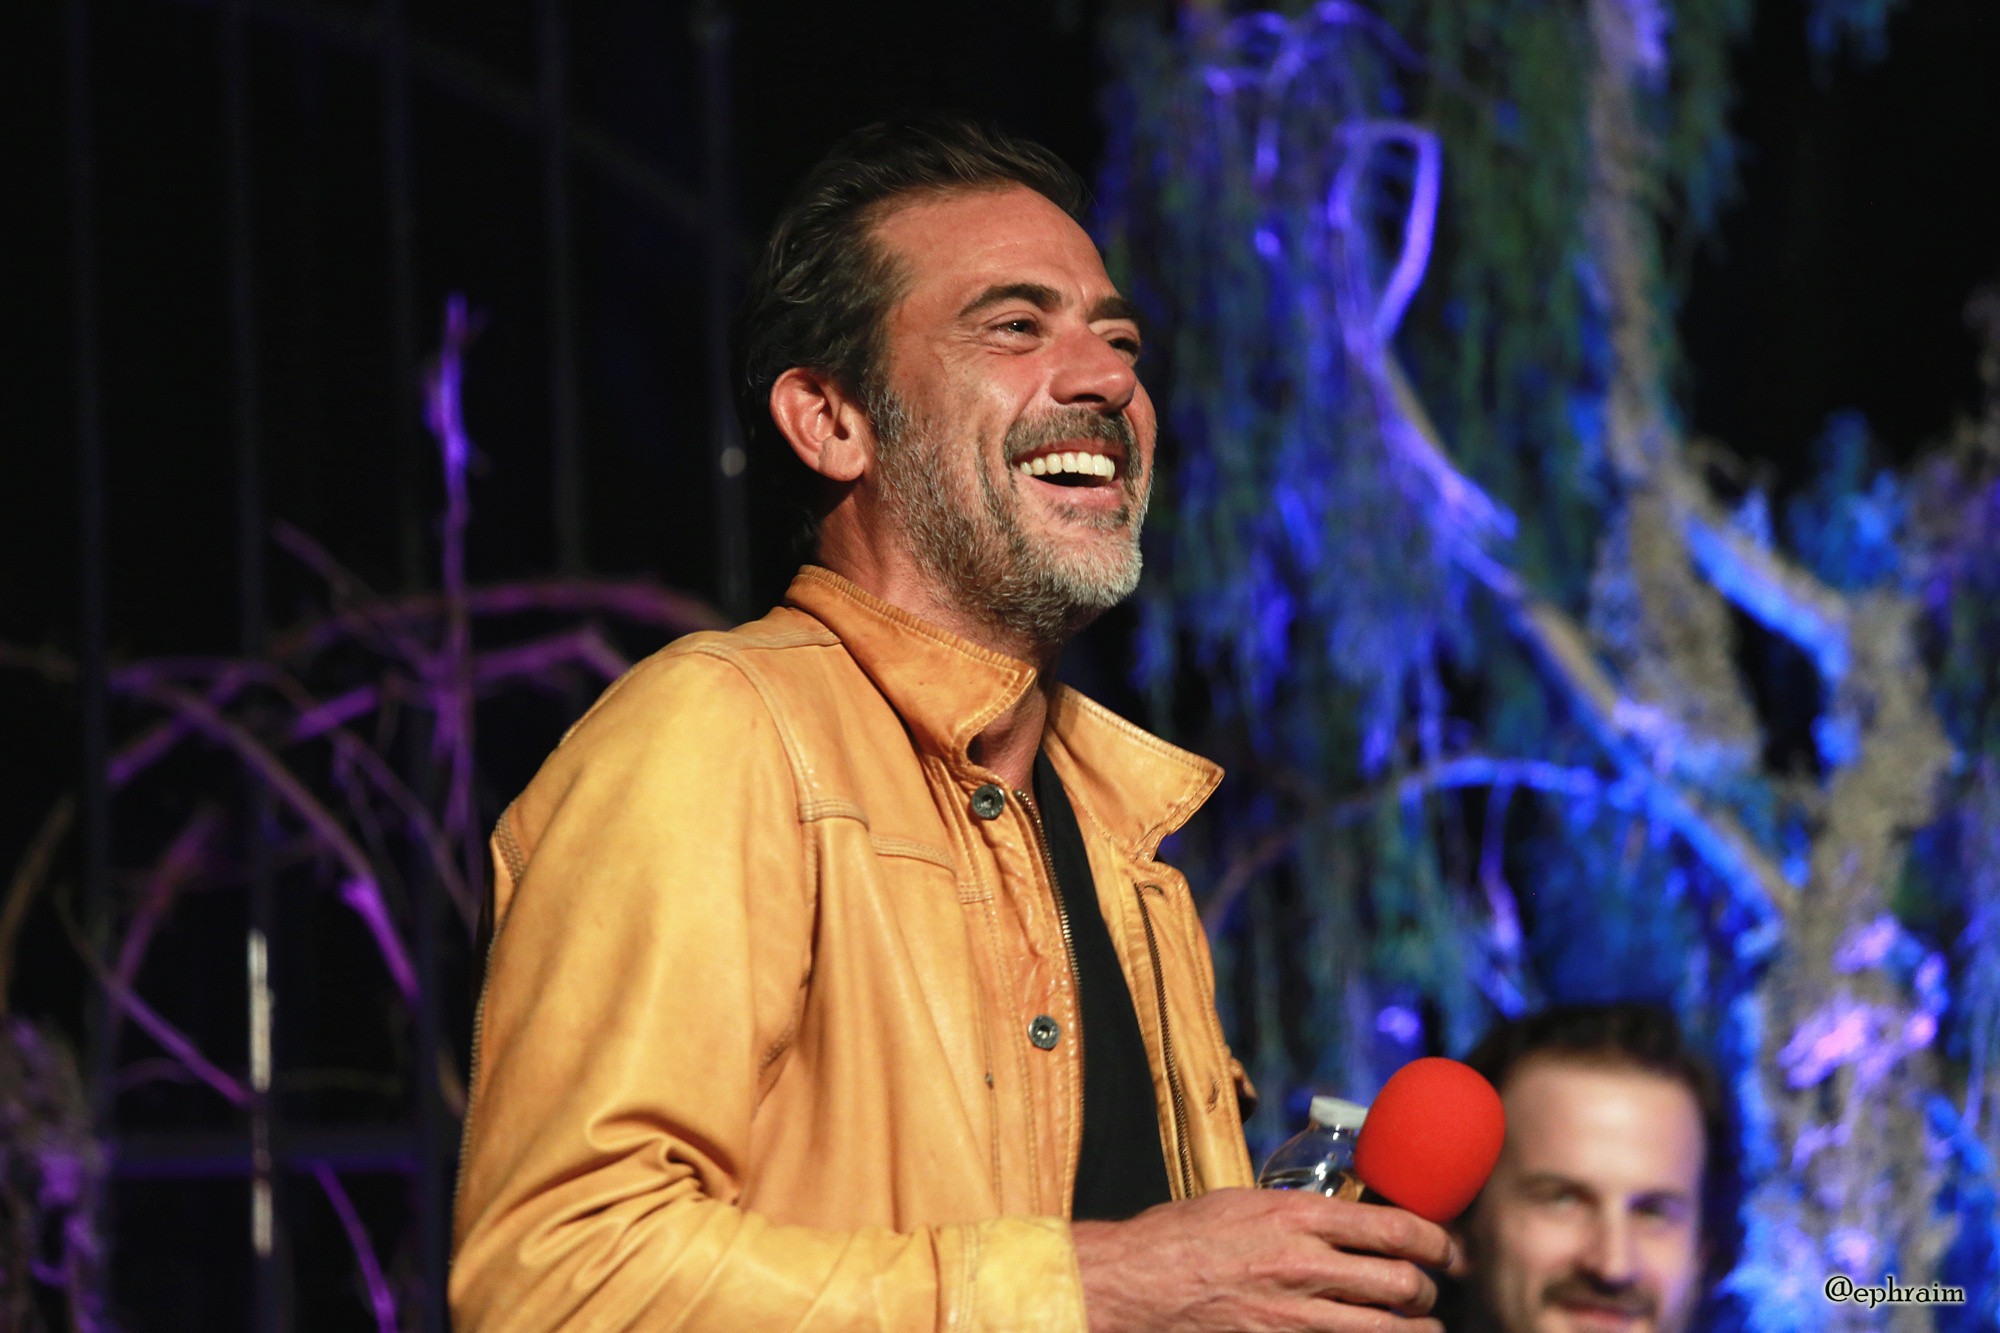 Supernatural - HQ Pics of Jeffrey Dean Morgan at VegasCon 2015